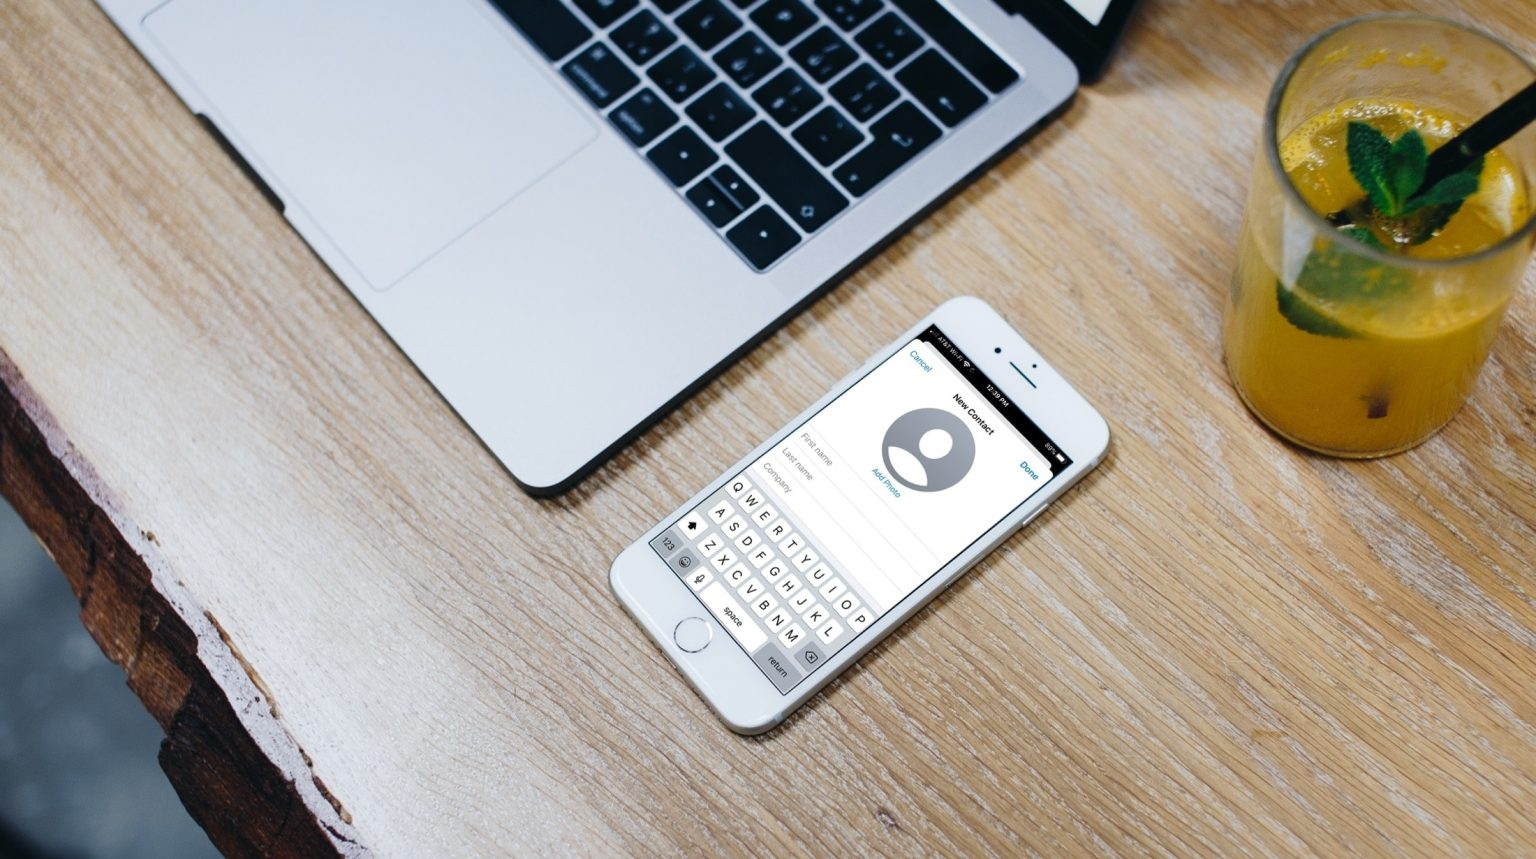 Save Numbers on iPhone Contacts